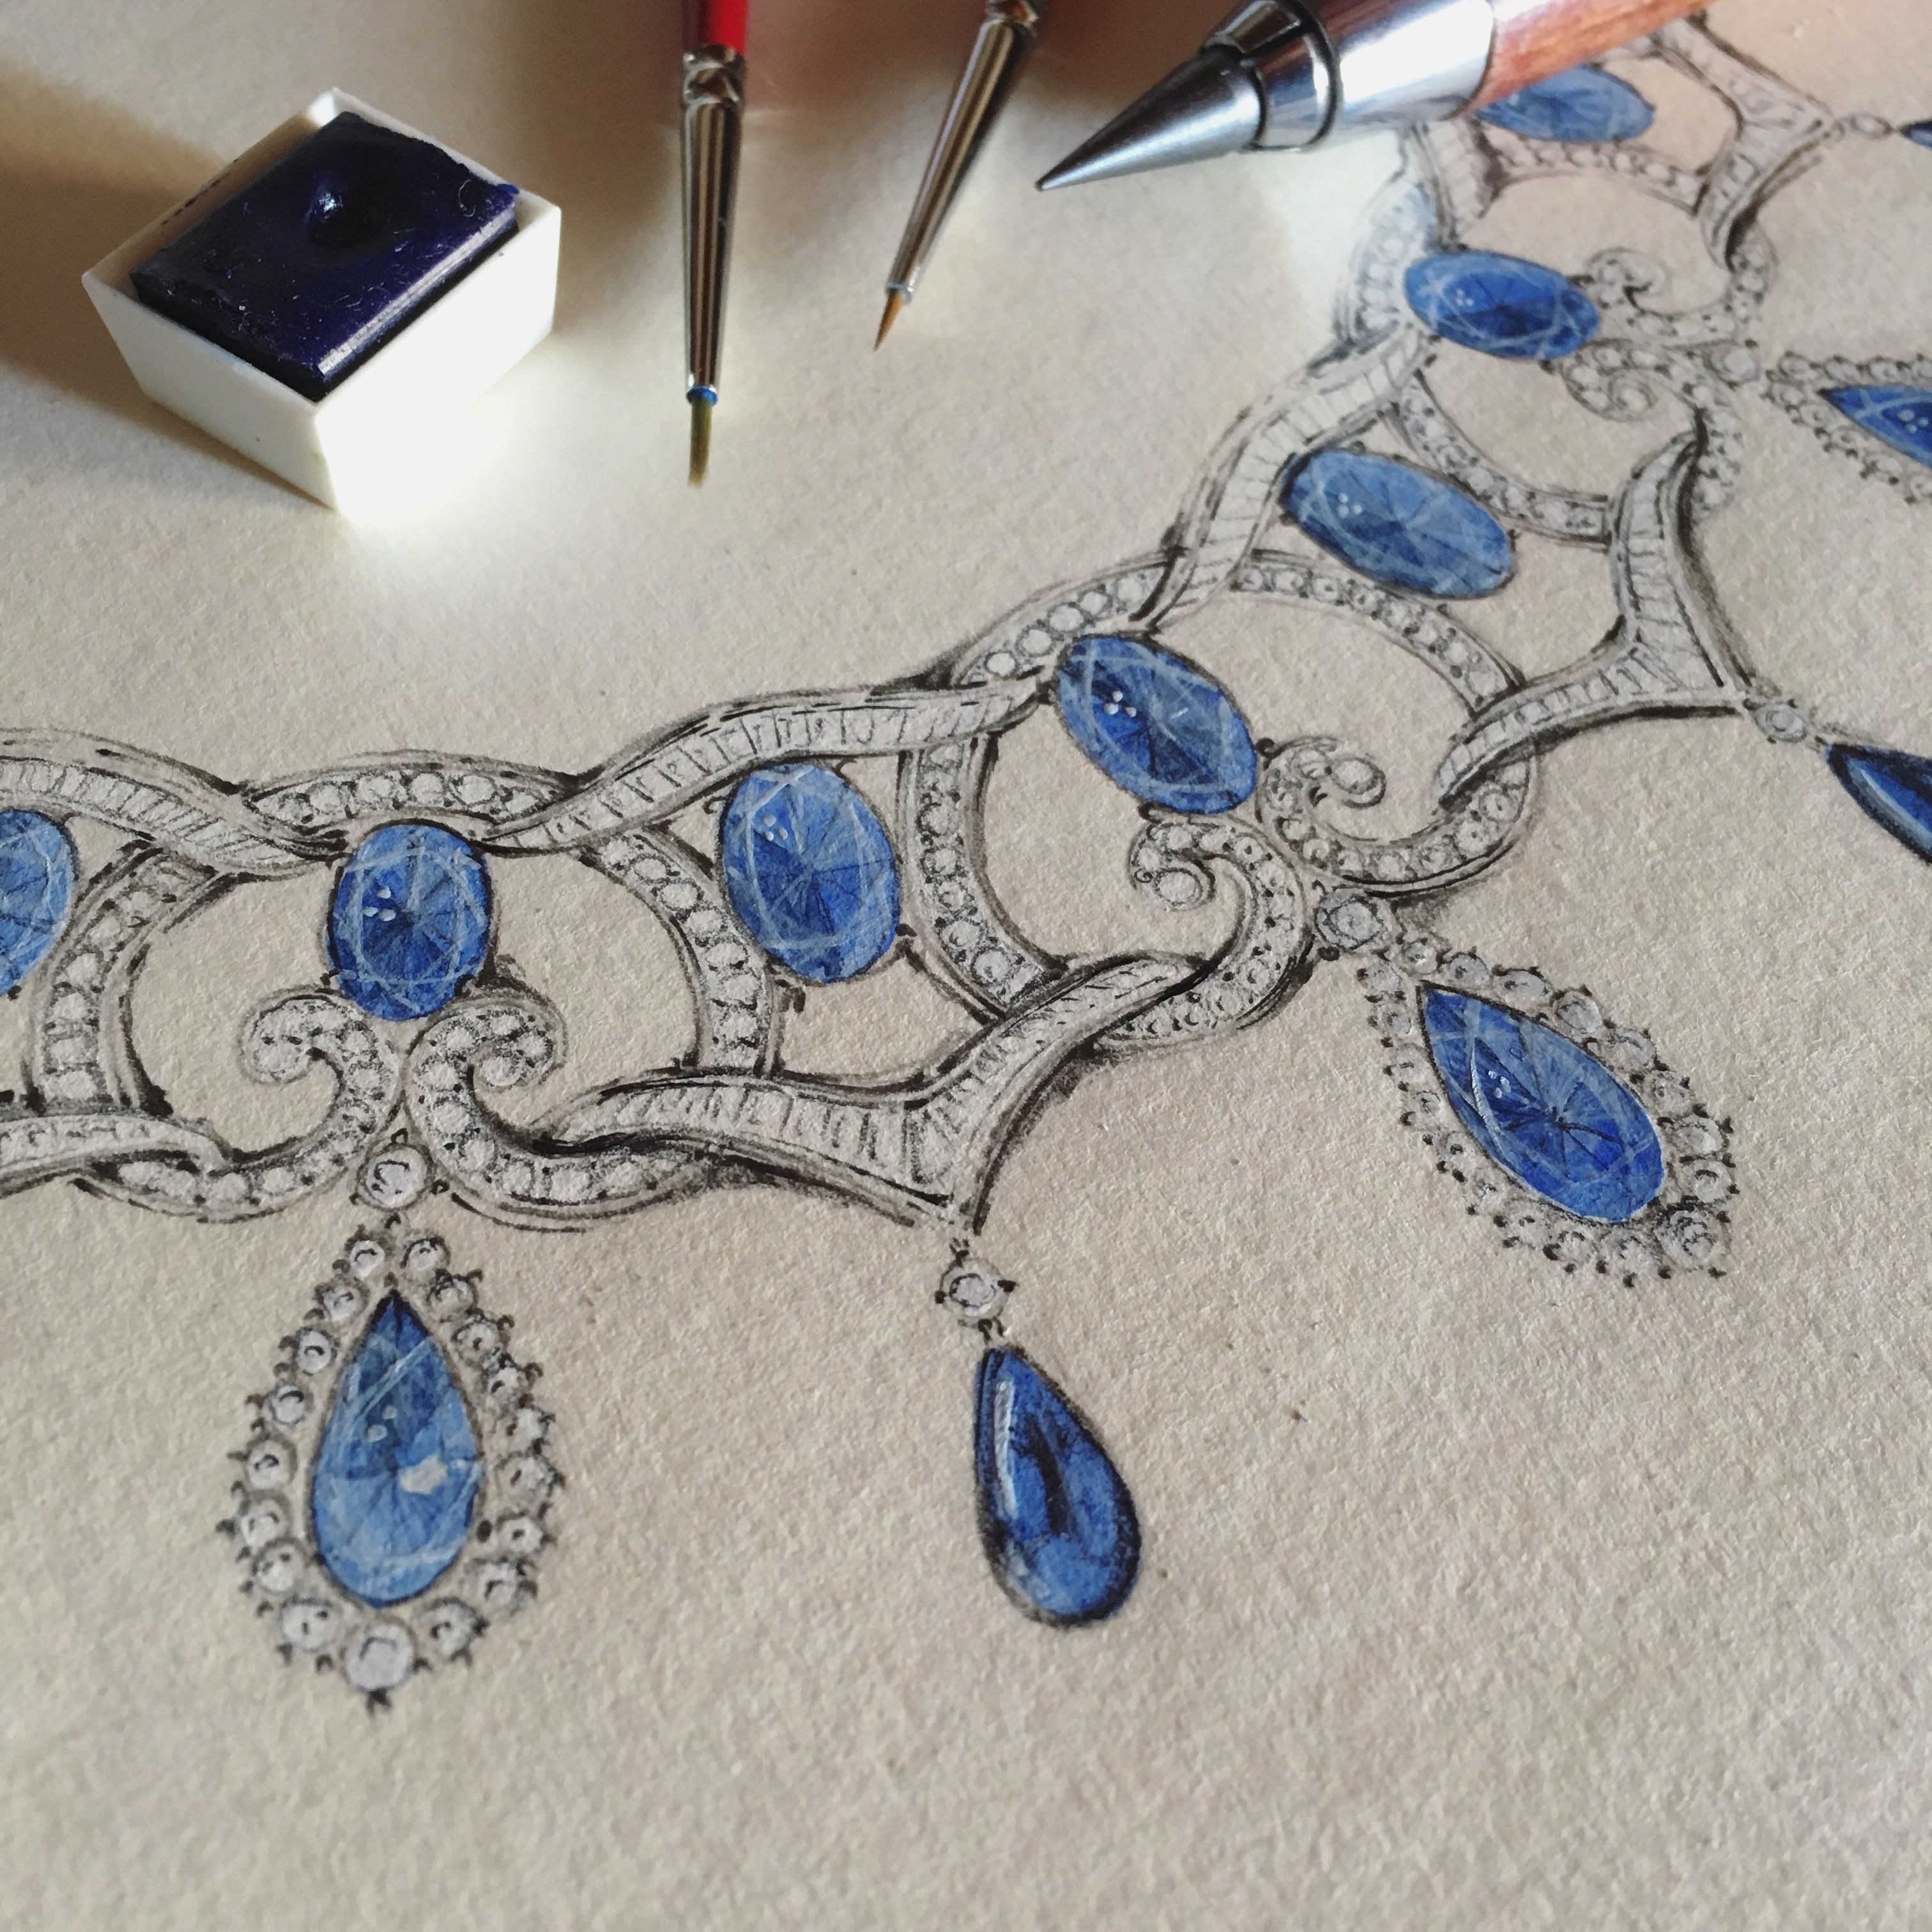 Blu Sapphires And Diamonds Necklace Art Jewelry Design Jewellery Sketches Indian Jewellery Design Earrings